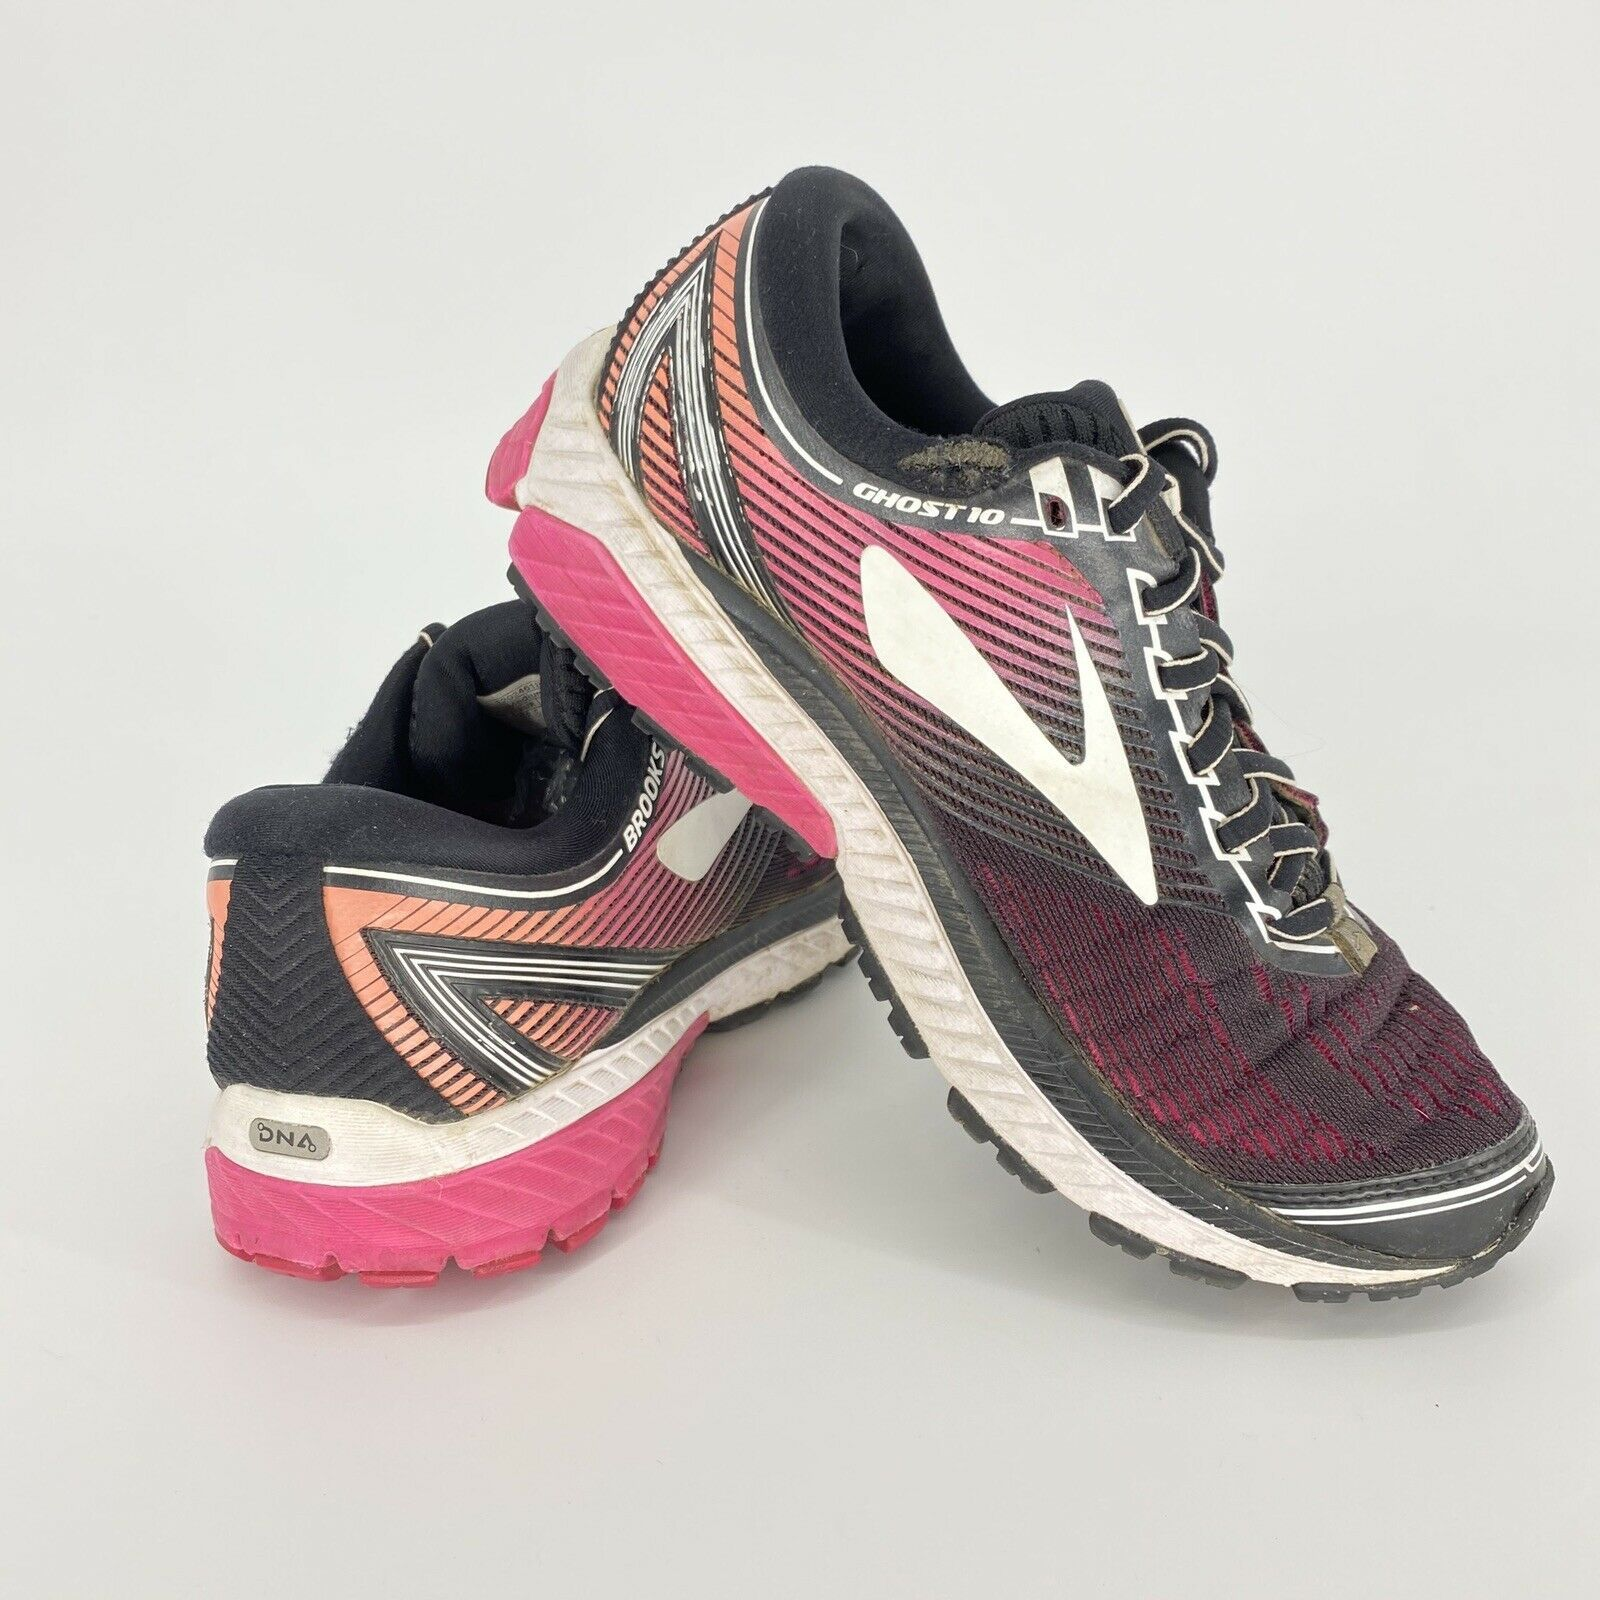 Details about Brooks Ghost 10 Women's